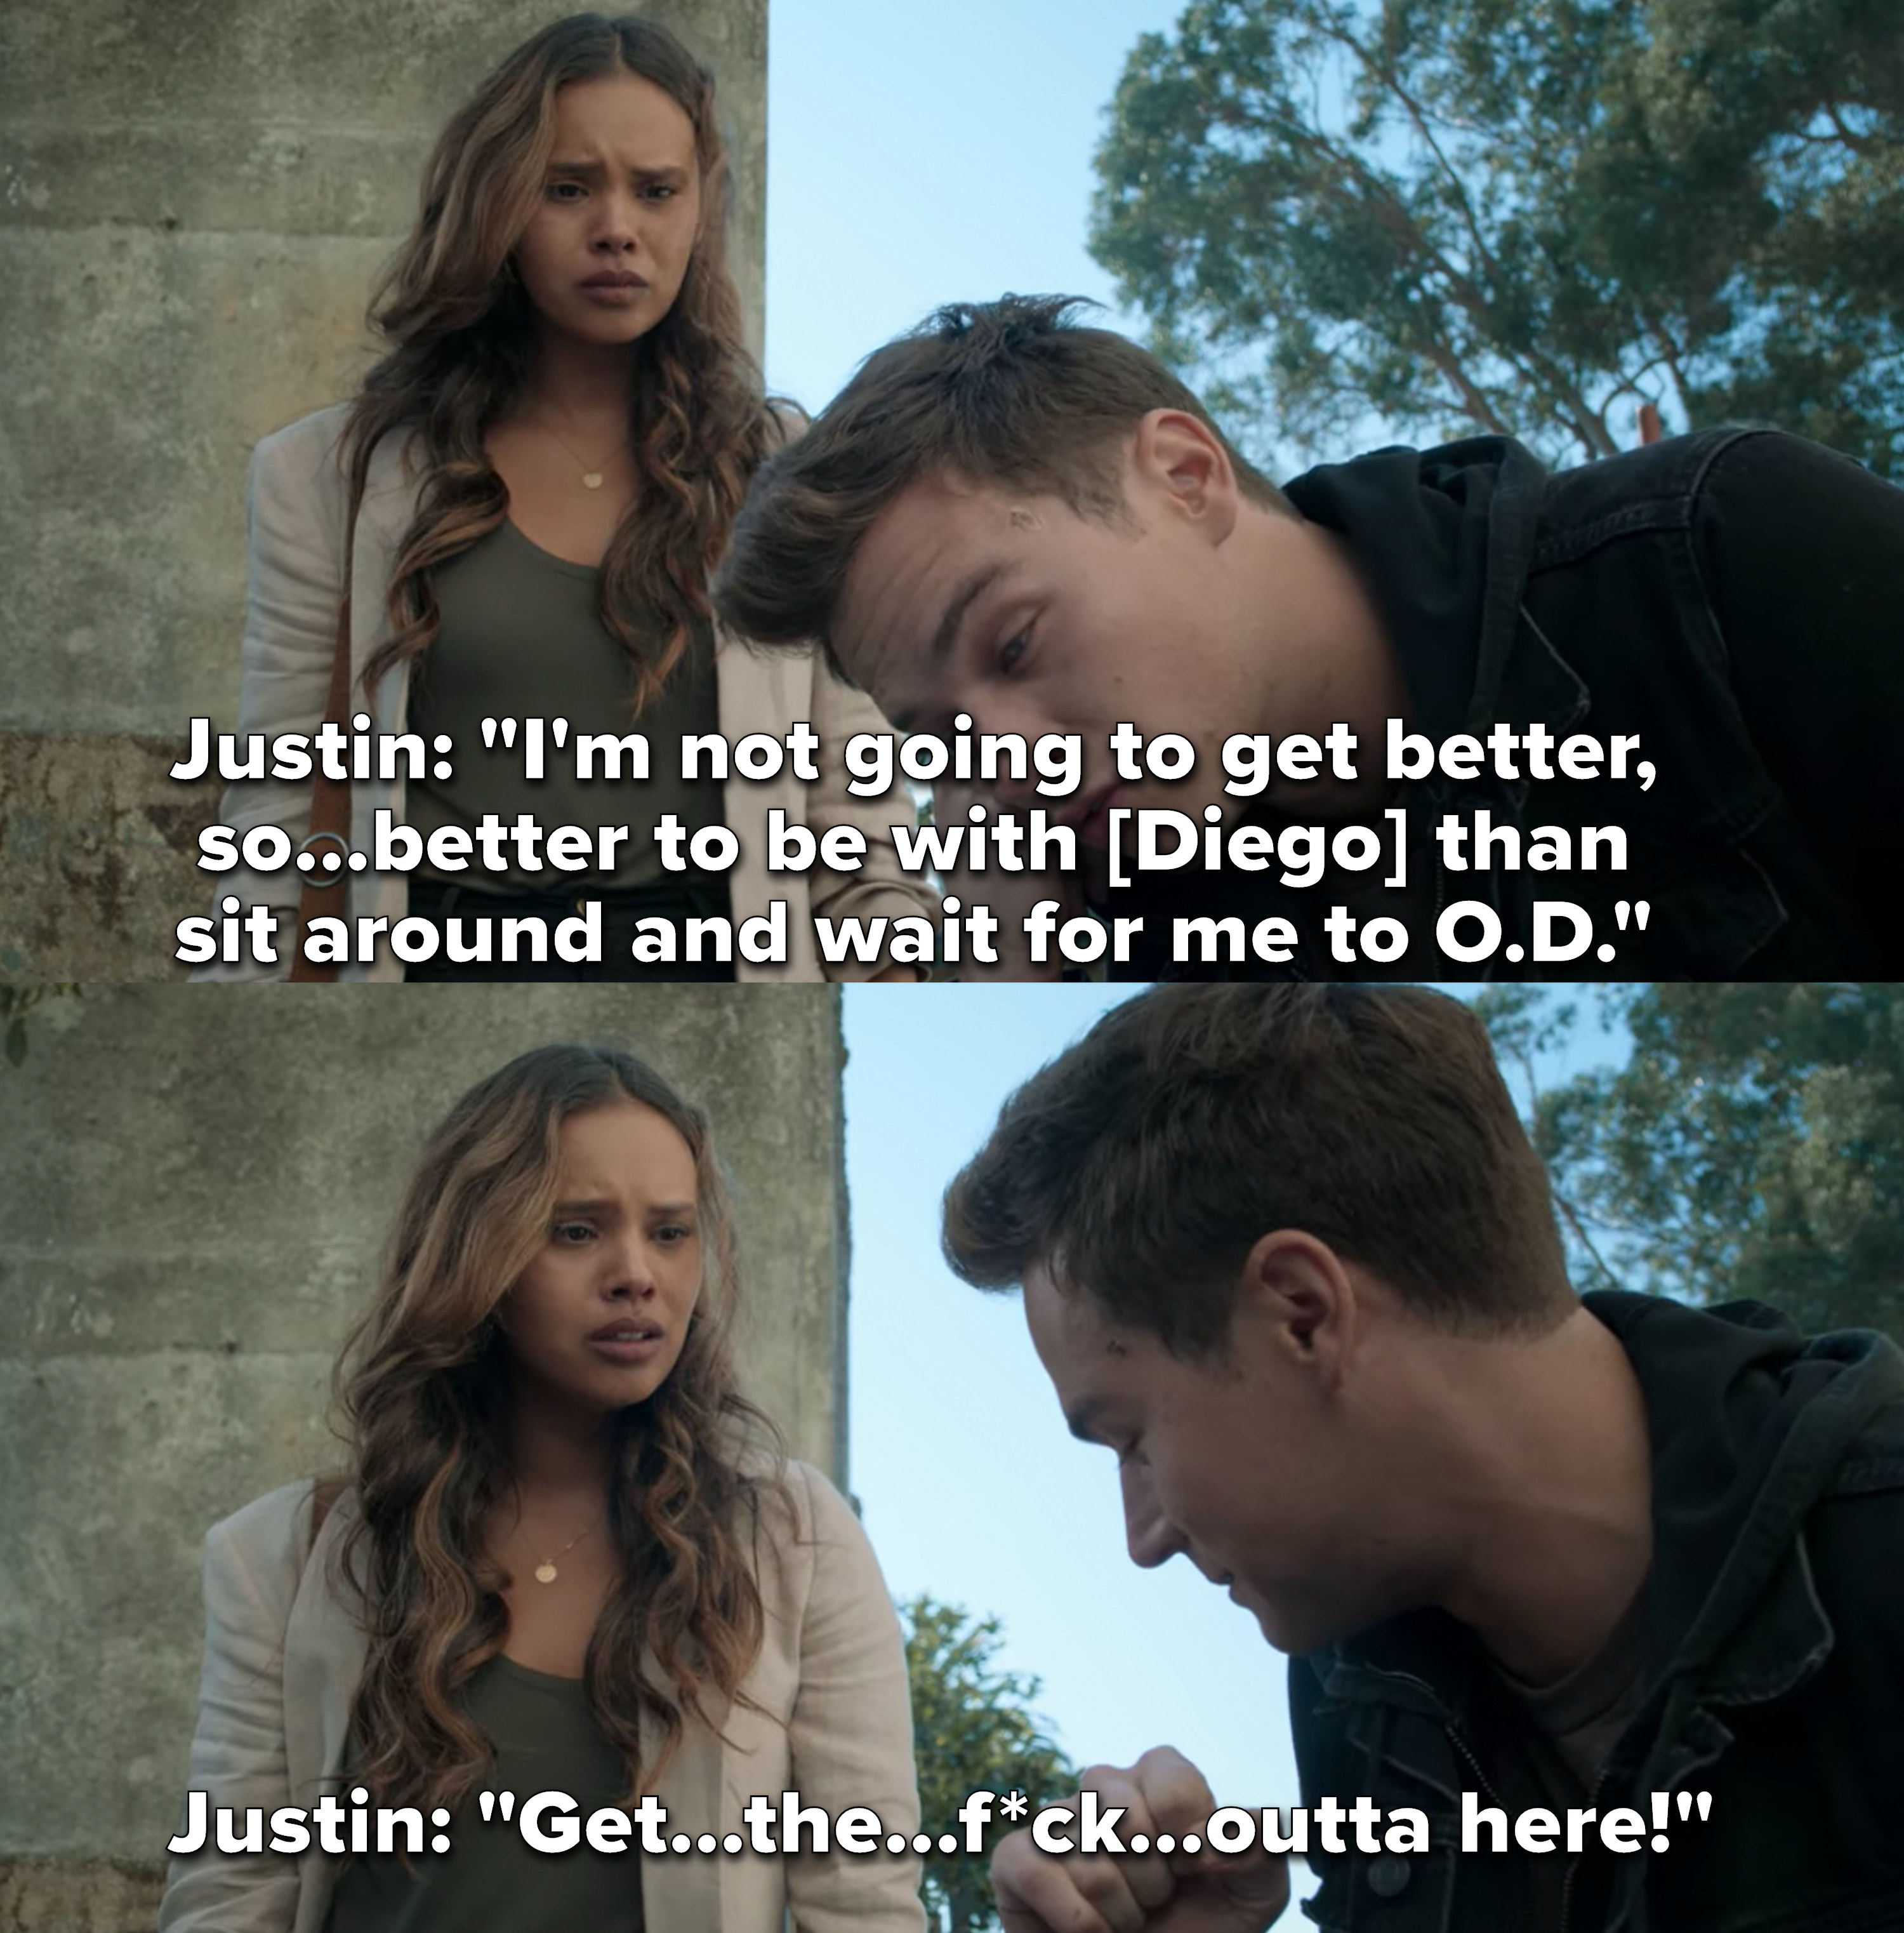 Justin tells Jess he's not going to get better, so she should just be with Diego